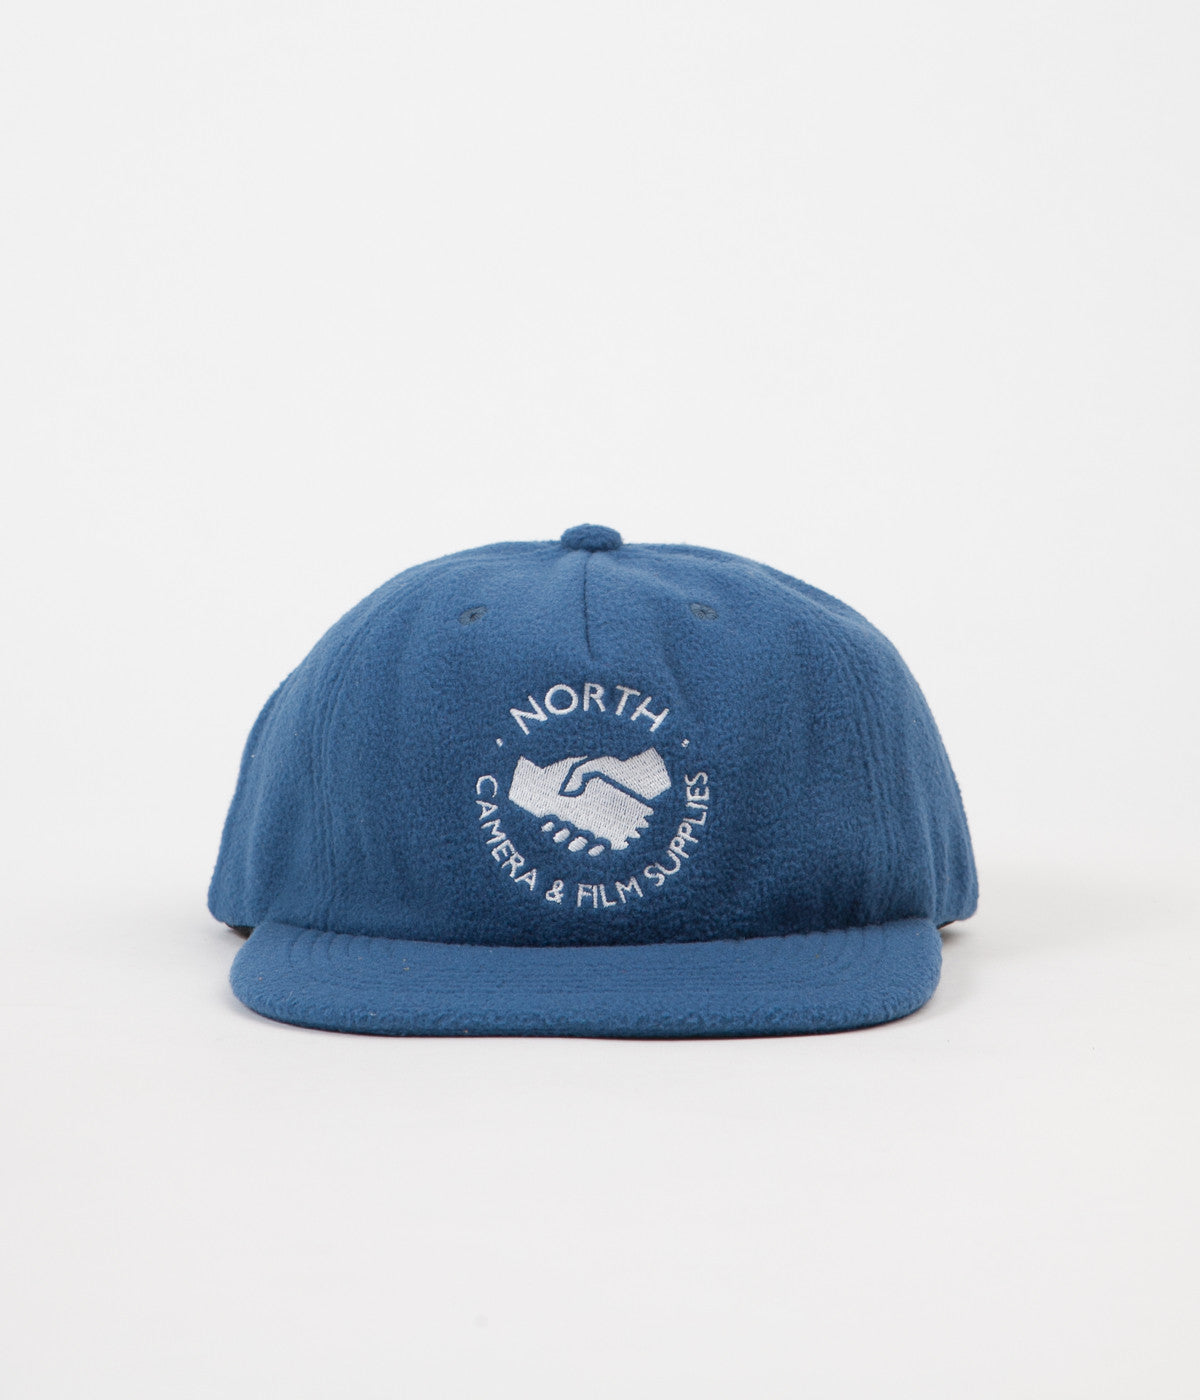 North Skateboard Magazine Film Supplies Fleece Cap - Blue